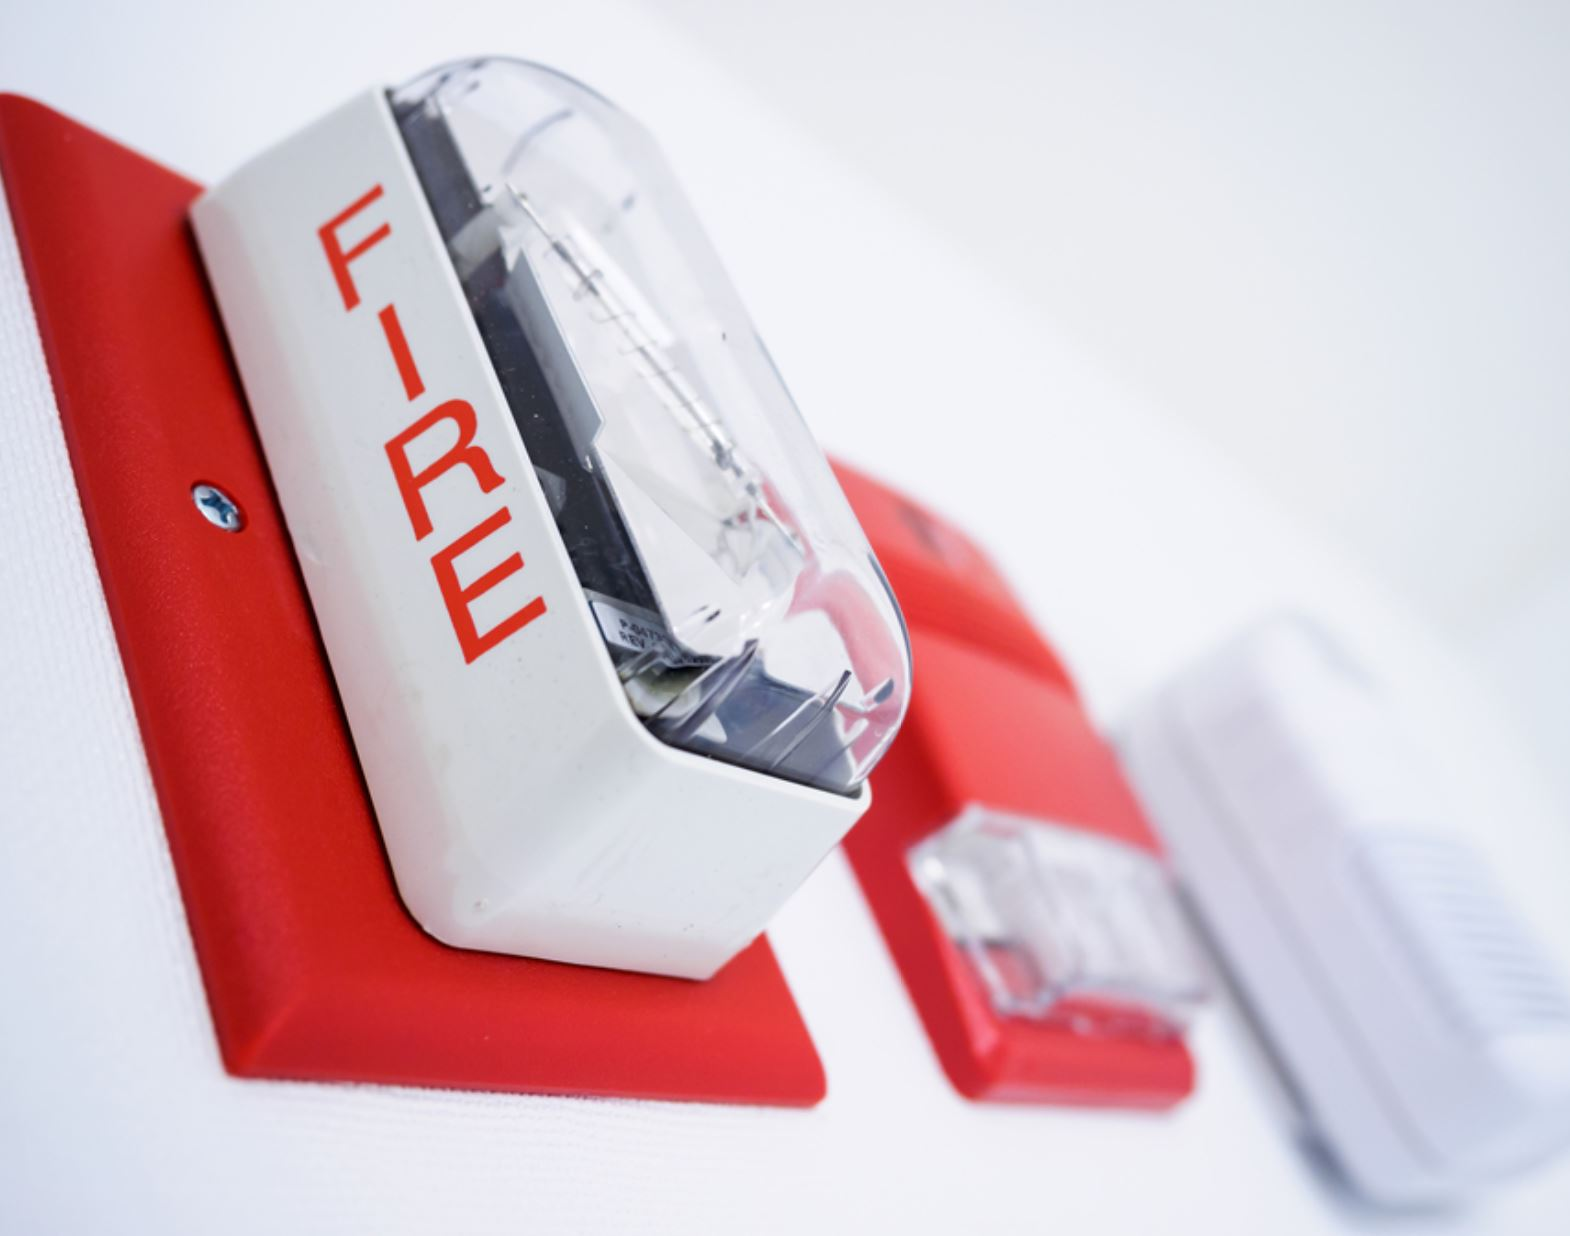 Fire alarm monitoring services are essential in commercial buildings.